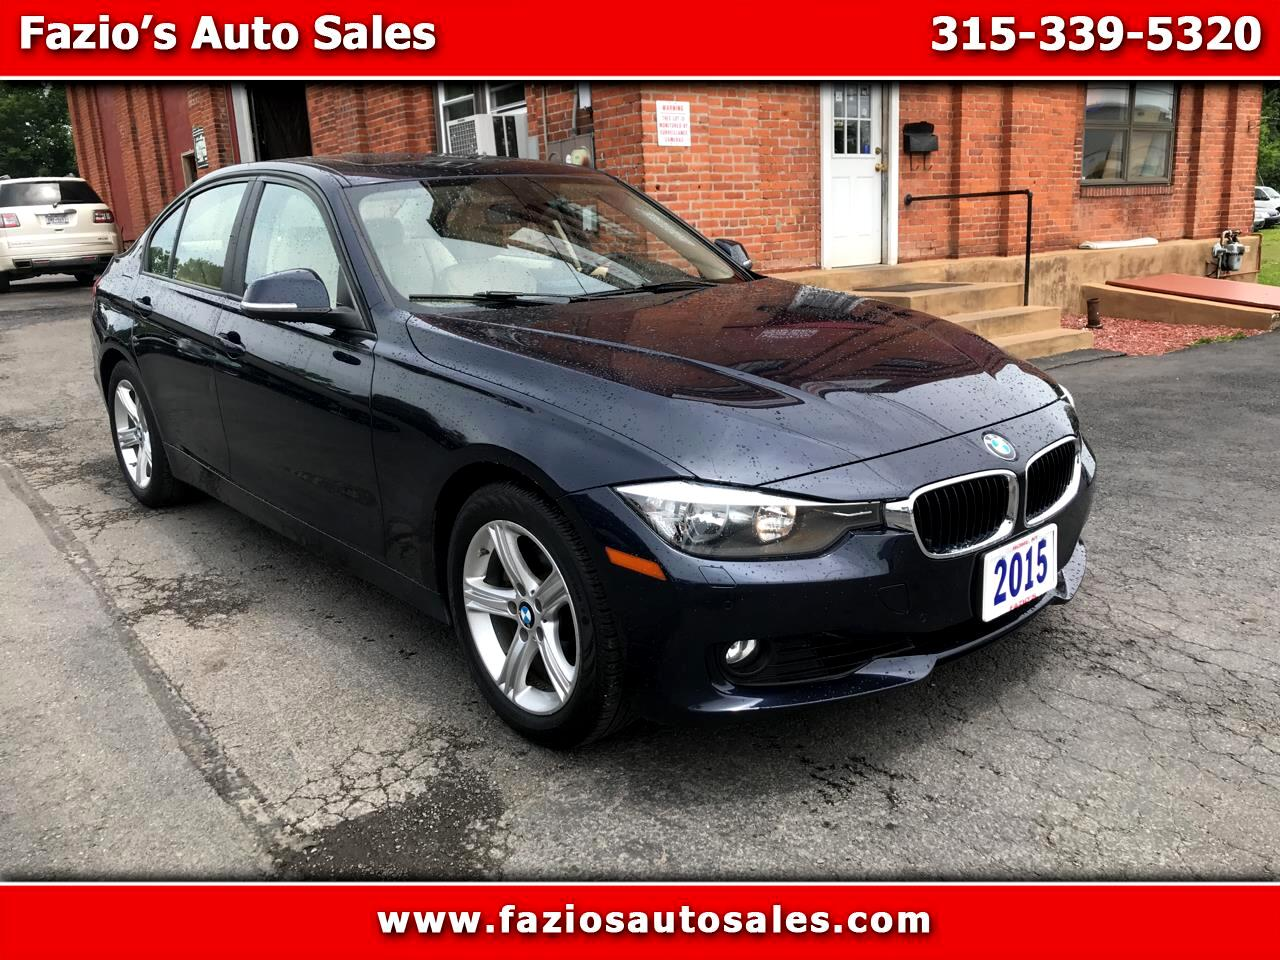 2015 BMW 3-Series 328i Coupe - SULEV